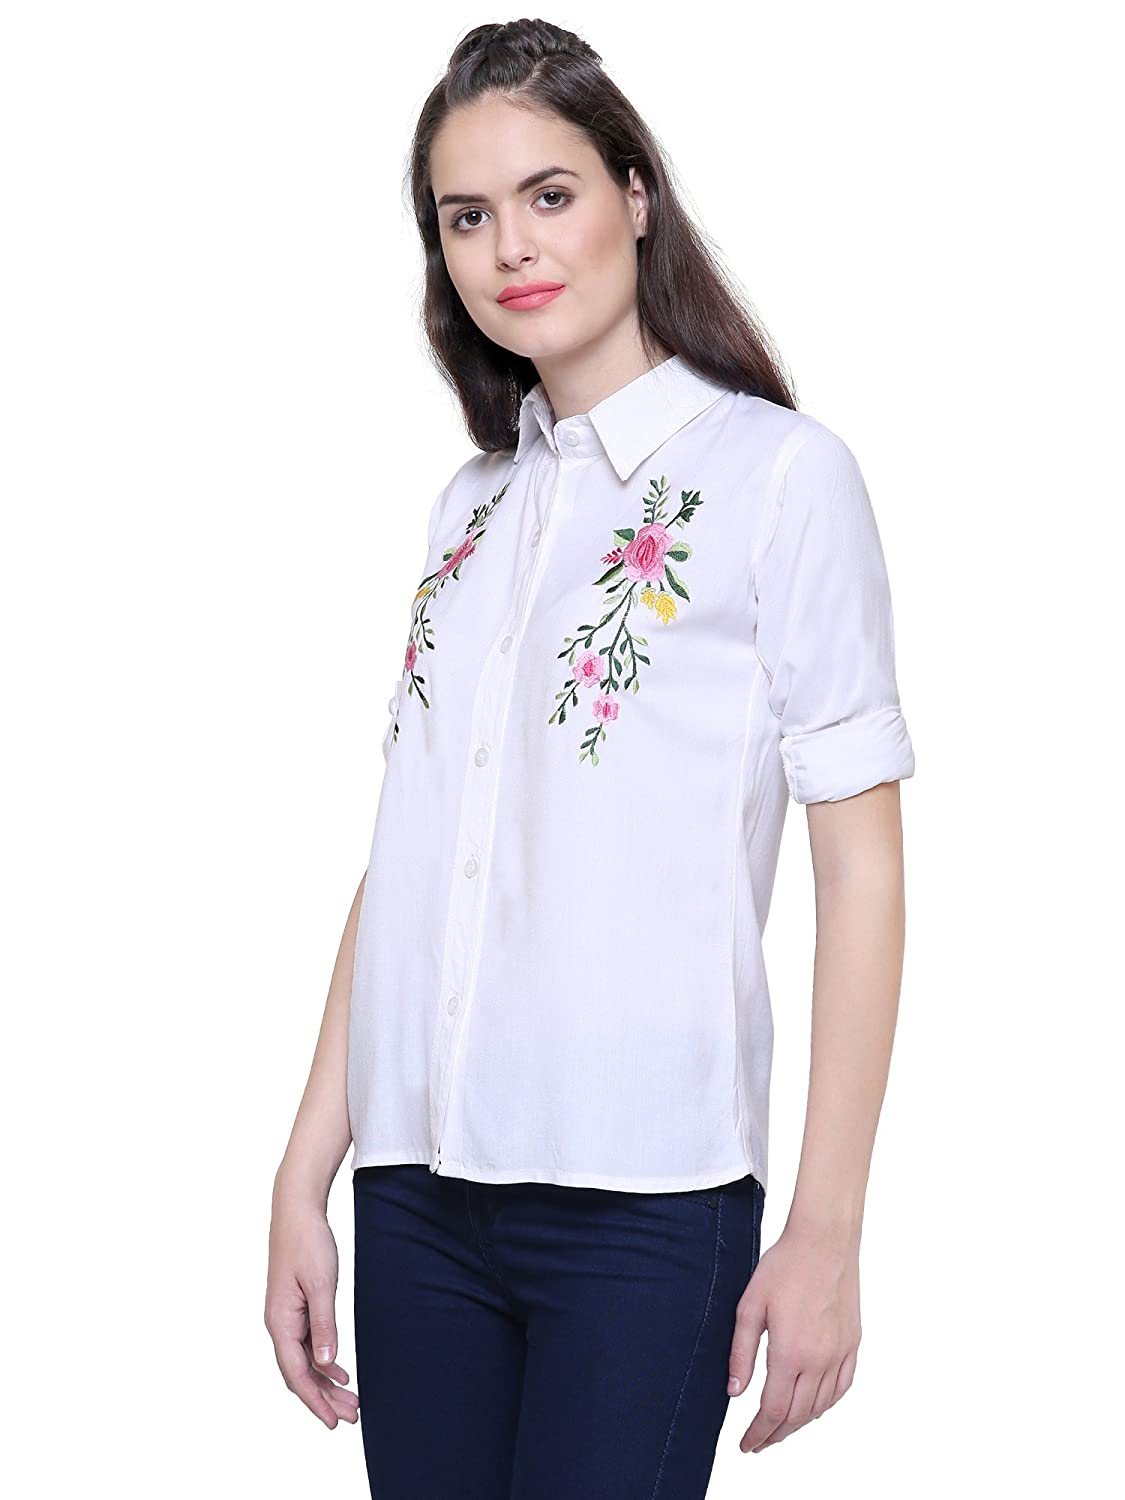 e7023394085e3 Fashion205 White Embroidered Shirt for Women s  Amazon.in  Clothing    Accessories